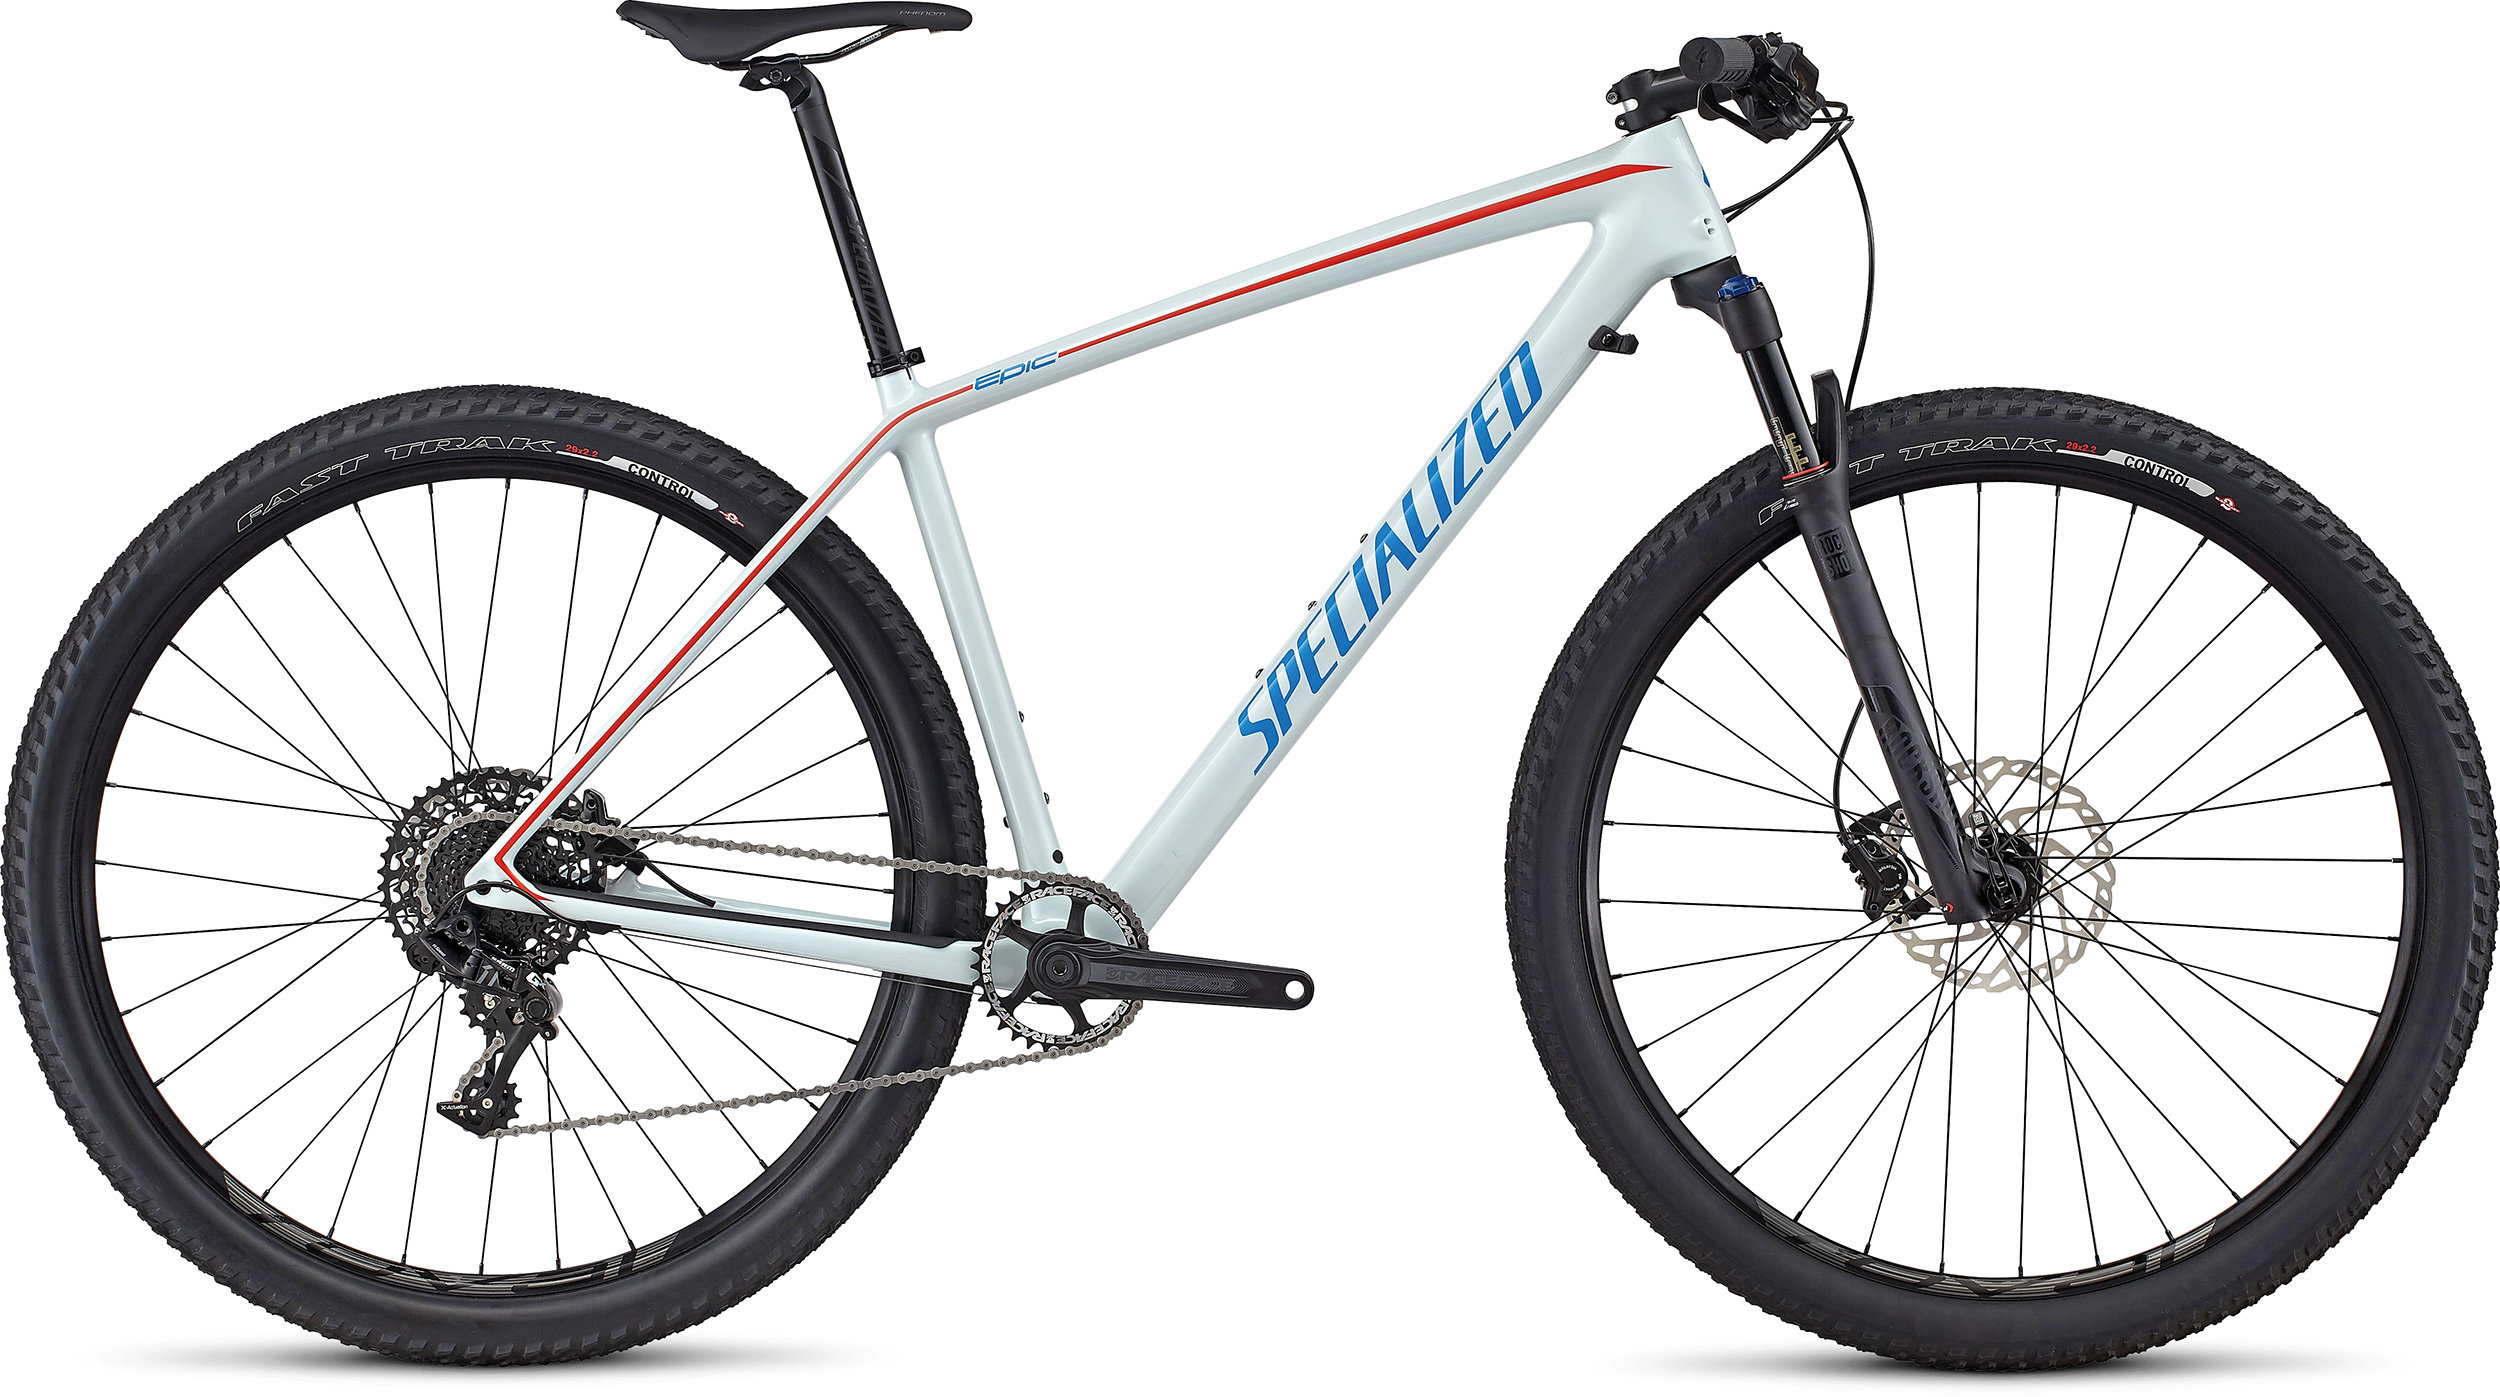 SPECIALIZED EPIC HT COMP CARBON WC 29 BBYBLU/NENBLU/NRDCRED L - Alpha Bikes